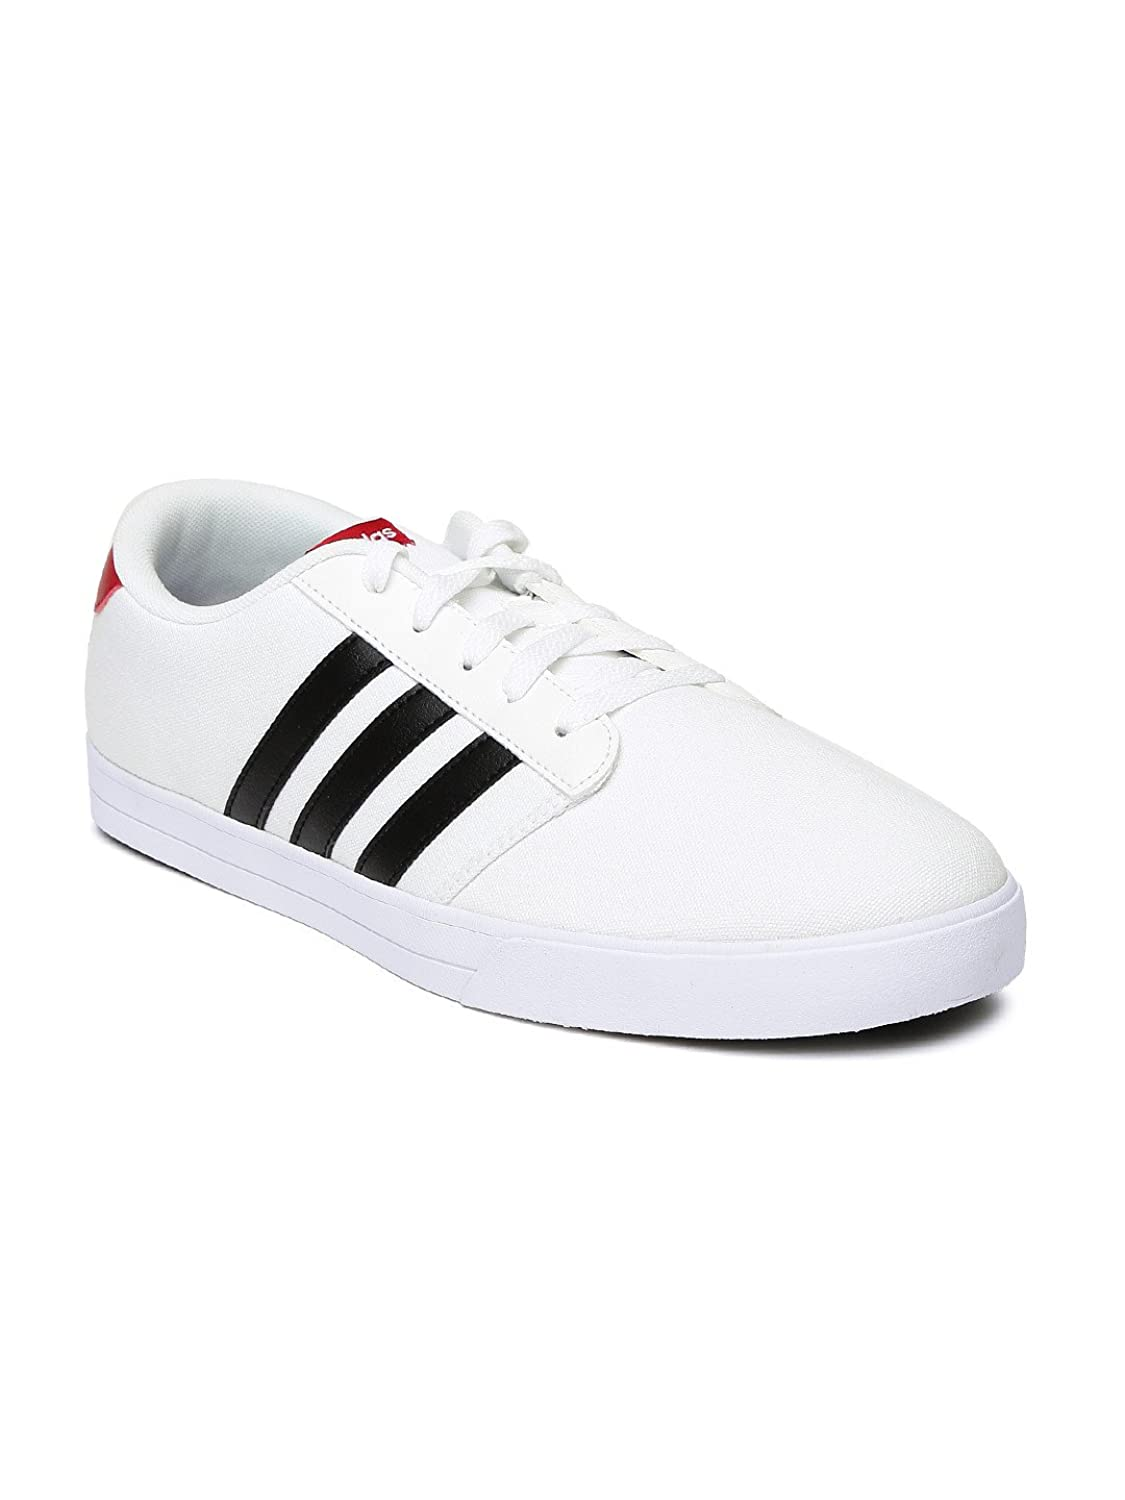 Adidas NEO Men White Vs Skate Casual Shoes (9UK): Buy Online at Low Prices  in India - Amazon.in